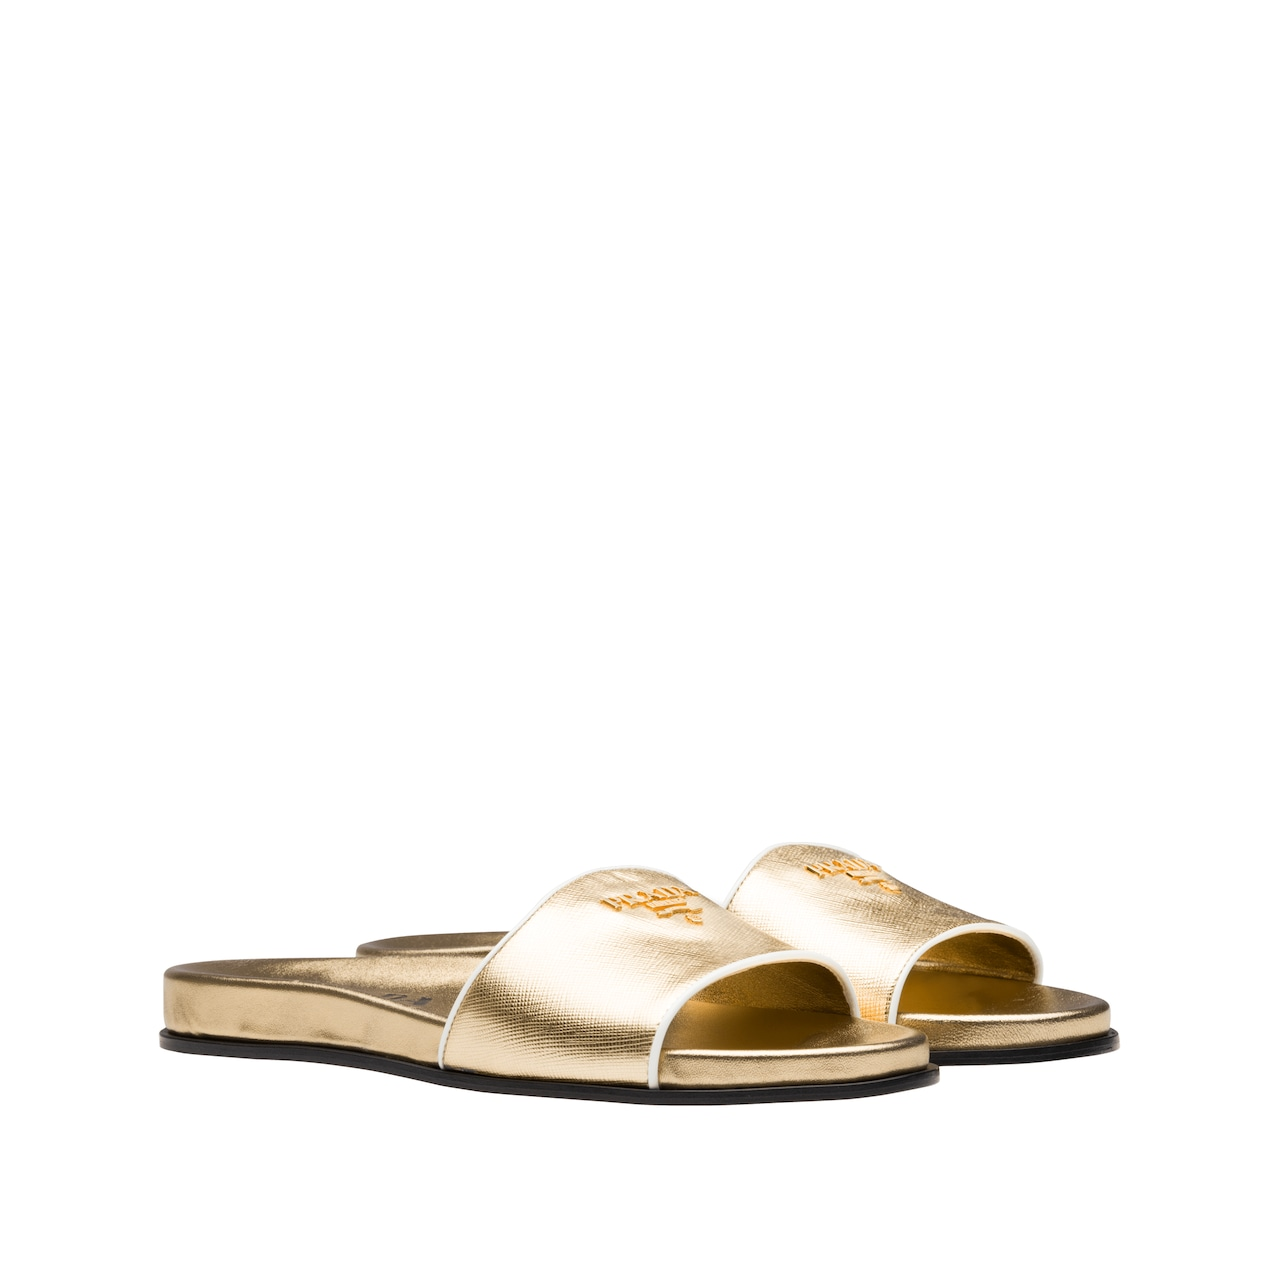 Patent leather sandals with Saffiano print